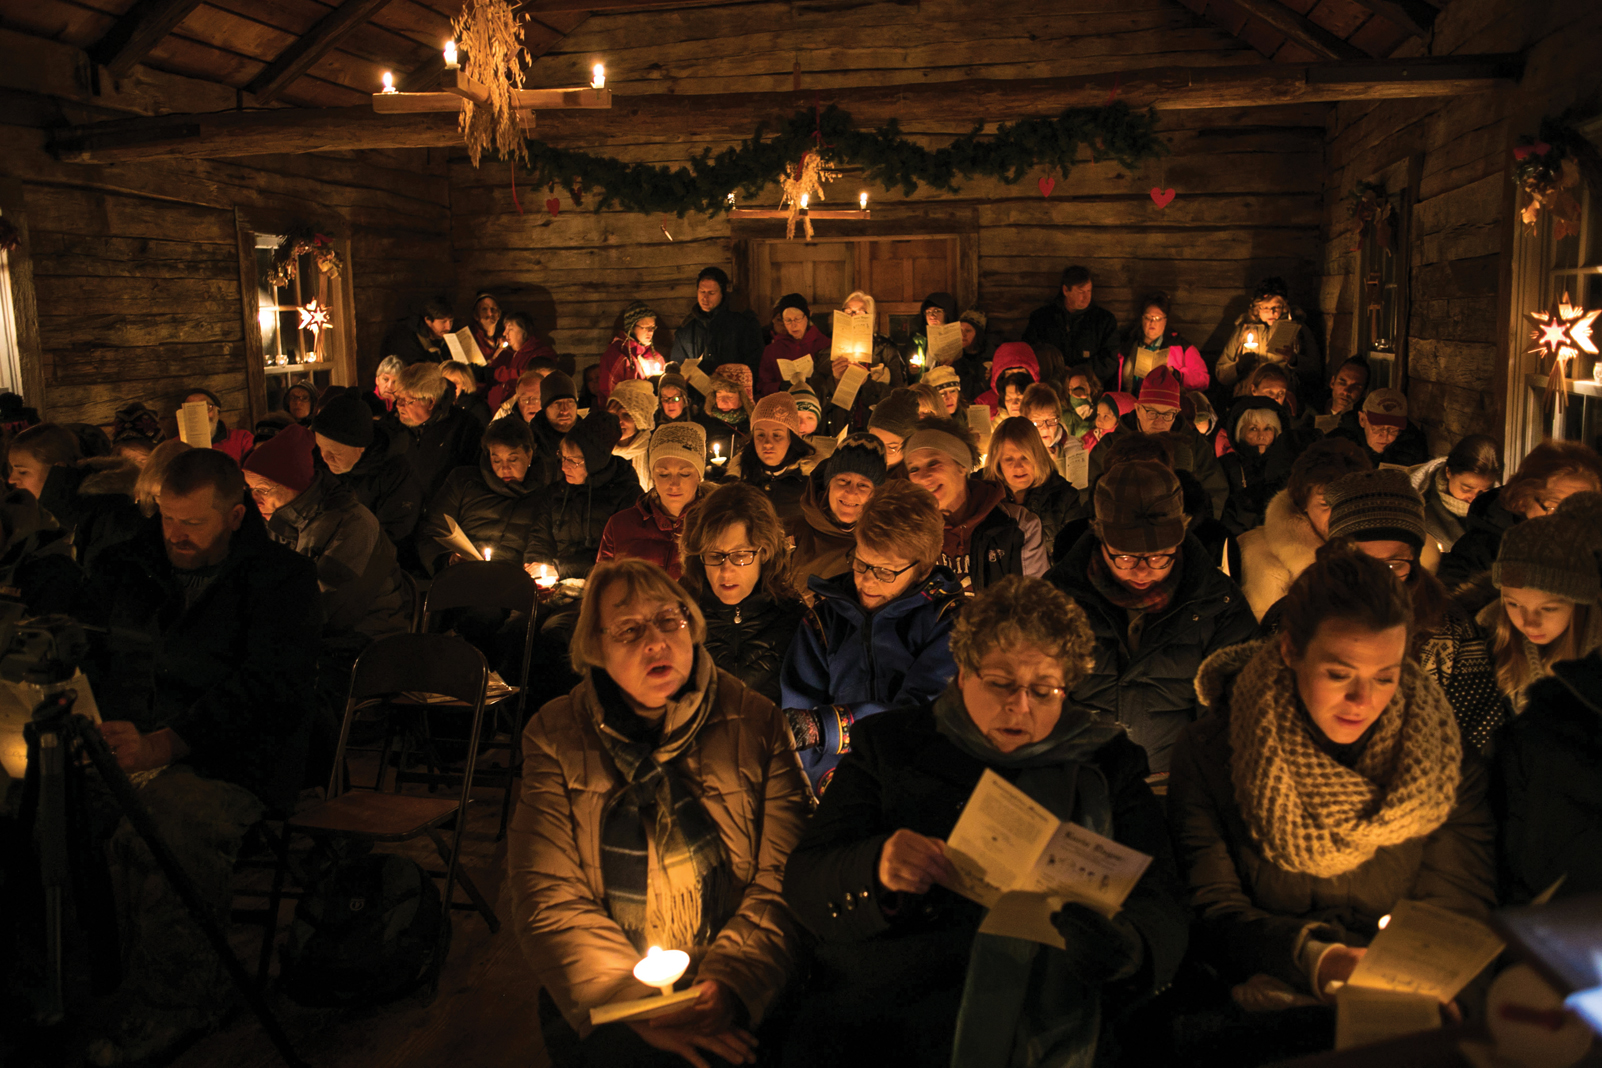 The Christmas service at Gammelgården Museum puts pageantry into the Scandinavian history of the Chisago Lakes area